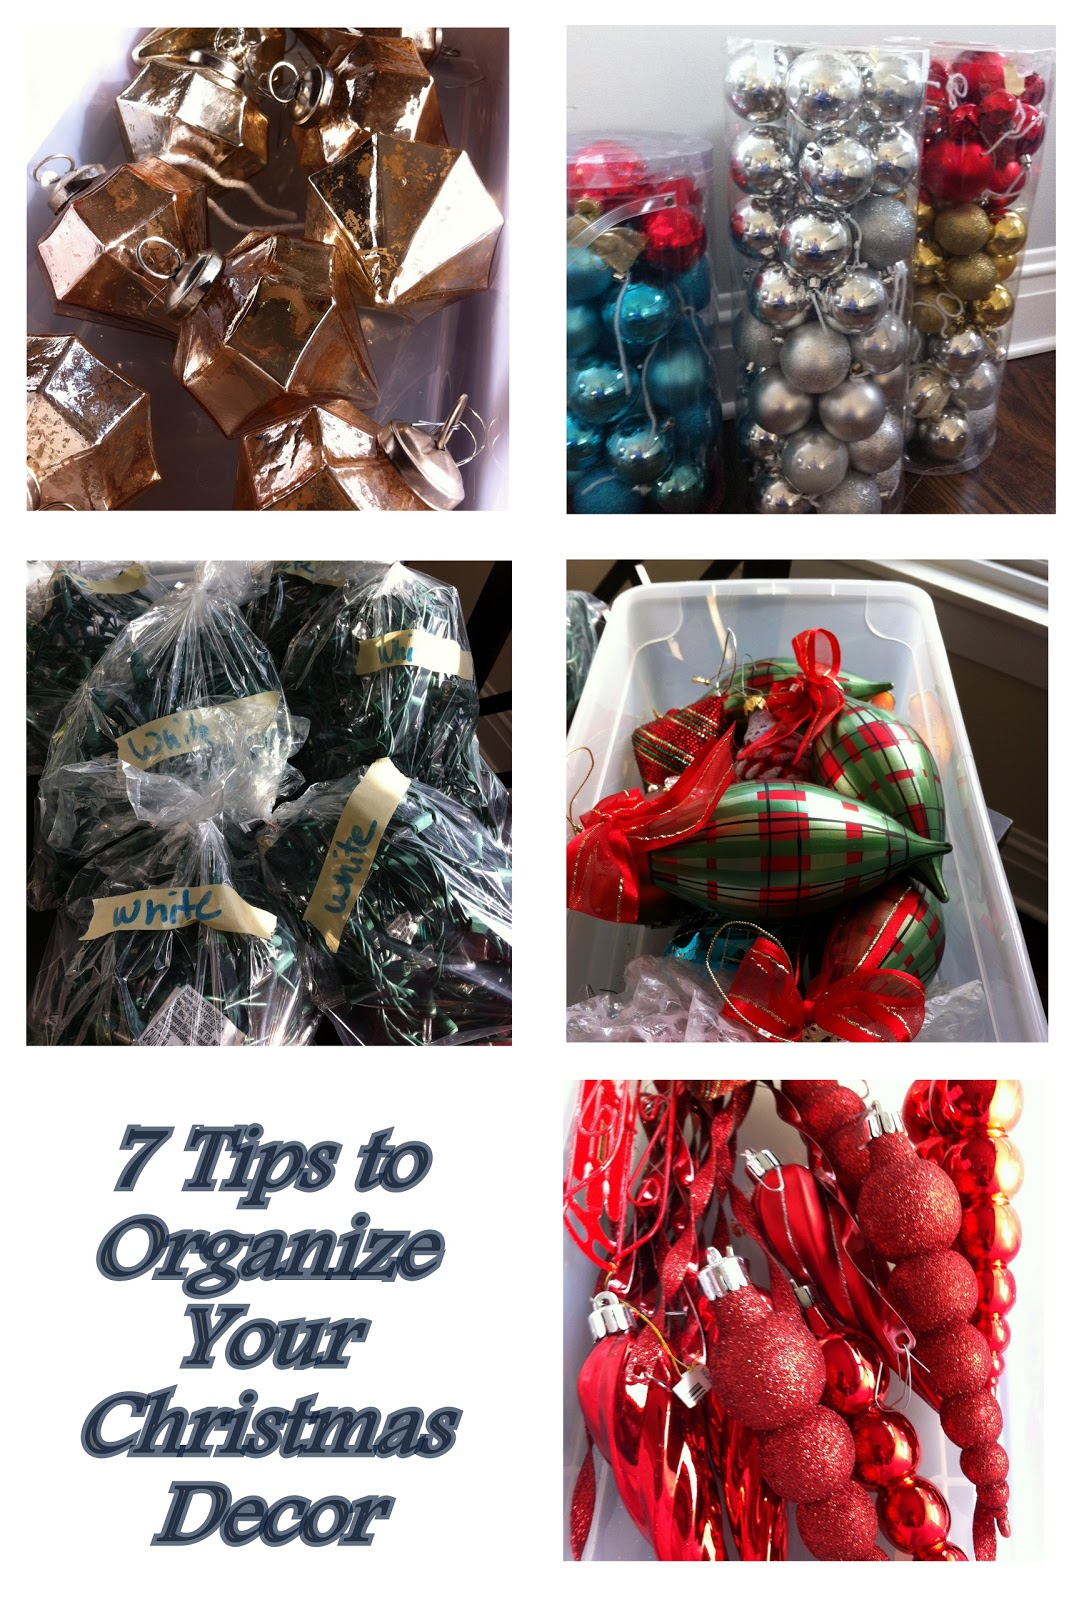 a few simple tips for organizing christmas decorations